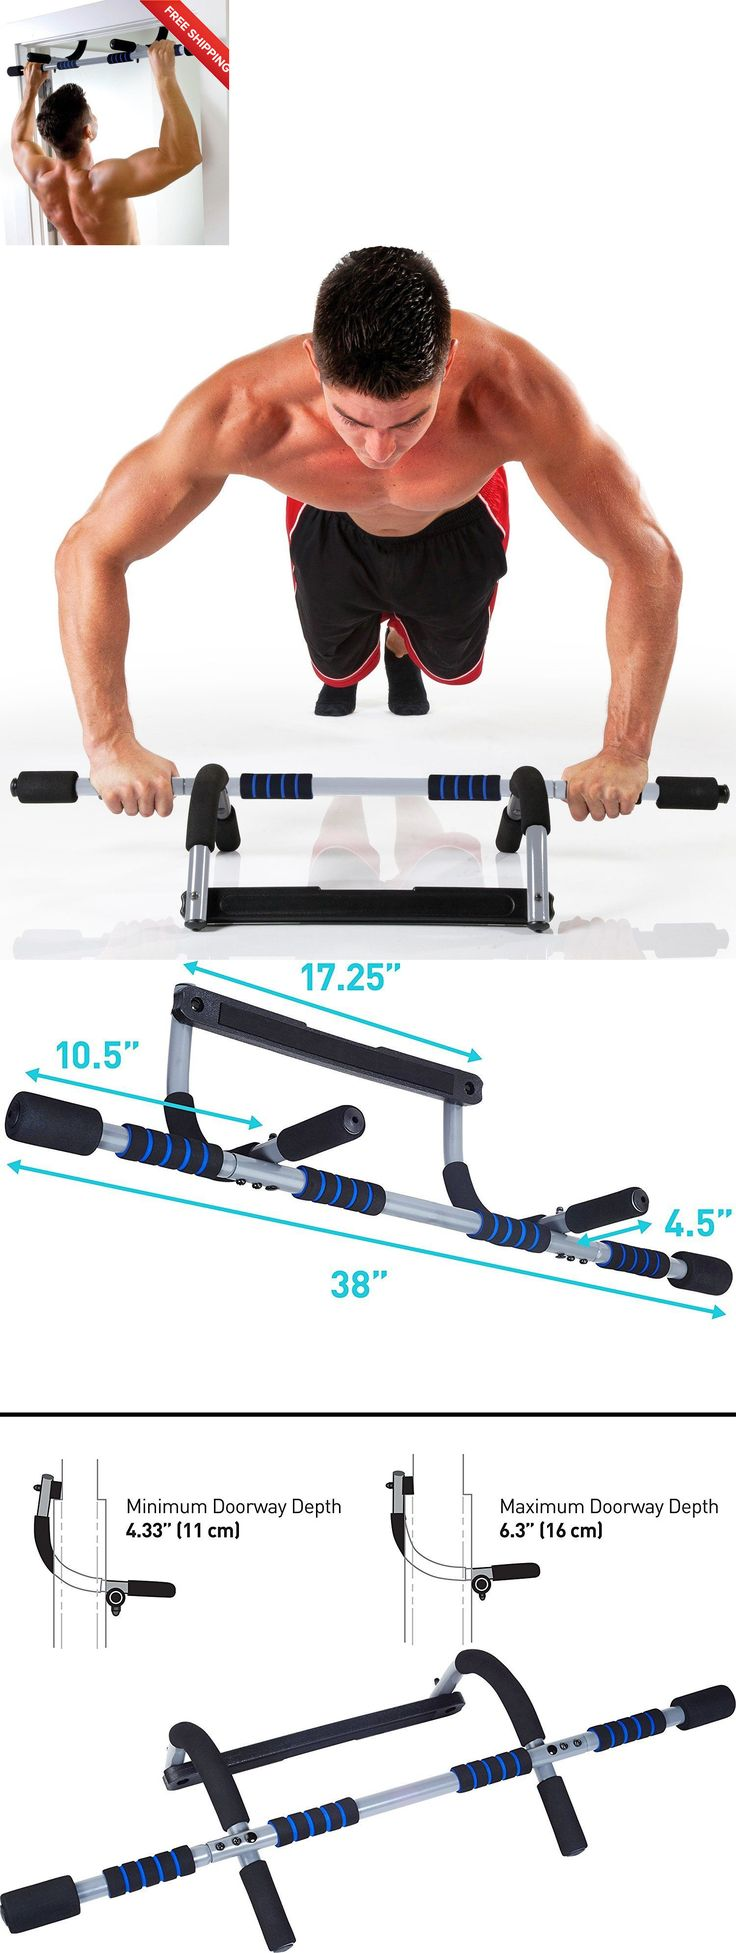 Abdominal straps crunch weight lifting door hanging gym chinning - Pull Up Bars 179816 Pull Up Bar Doorway Door Mount Workout Exercise Chin Push Up